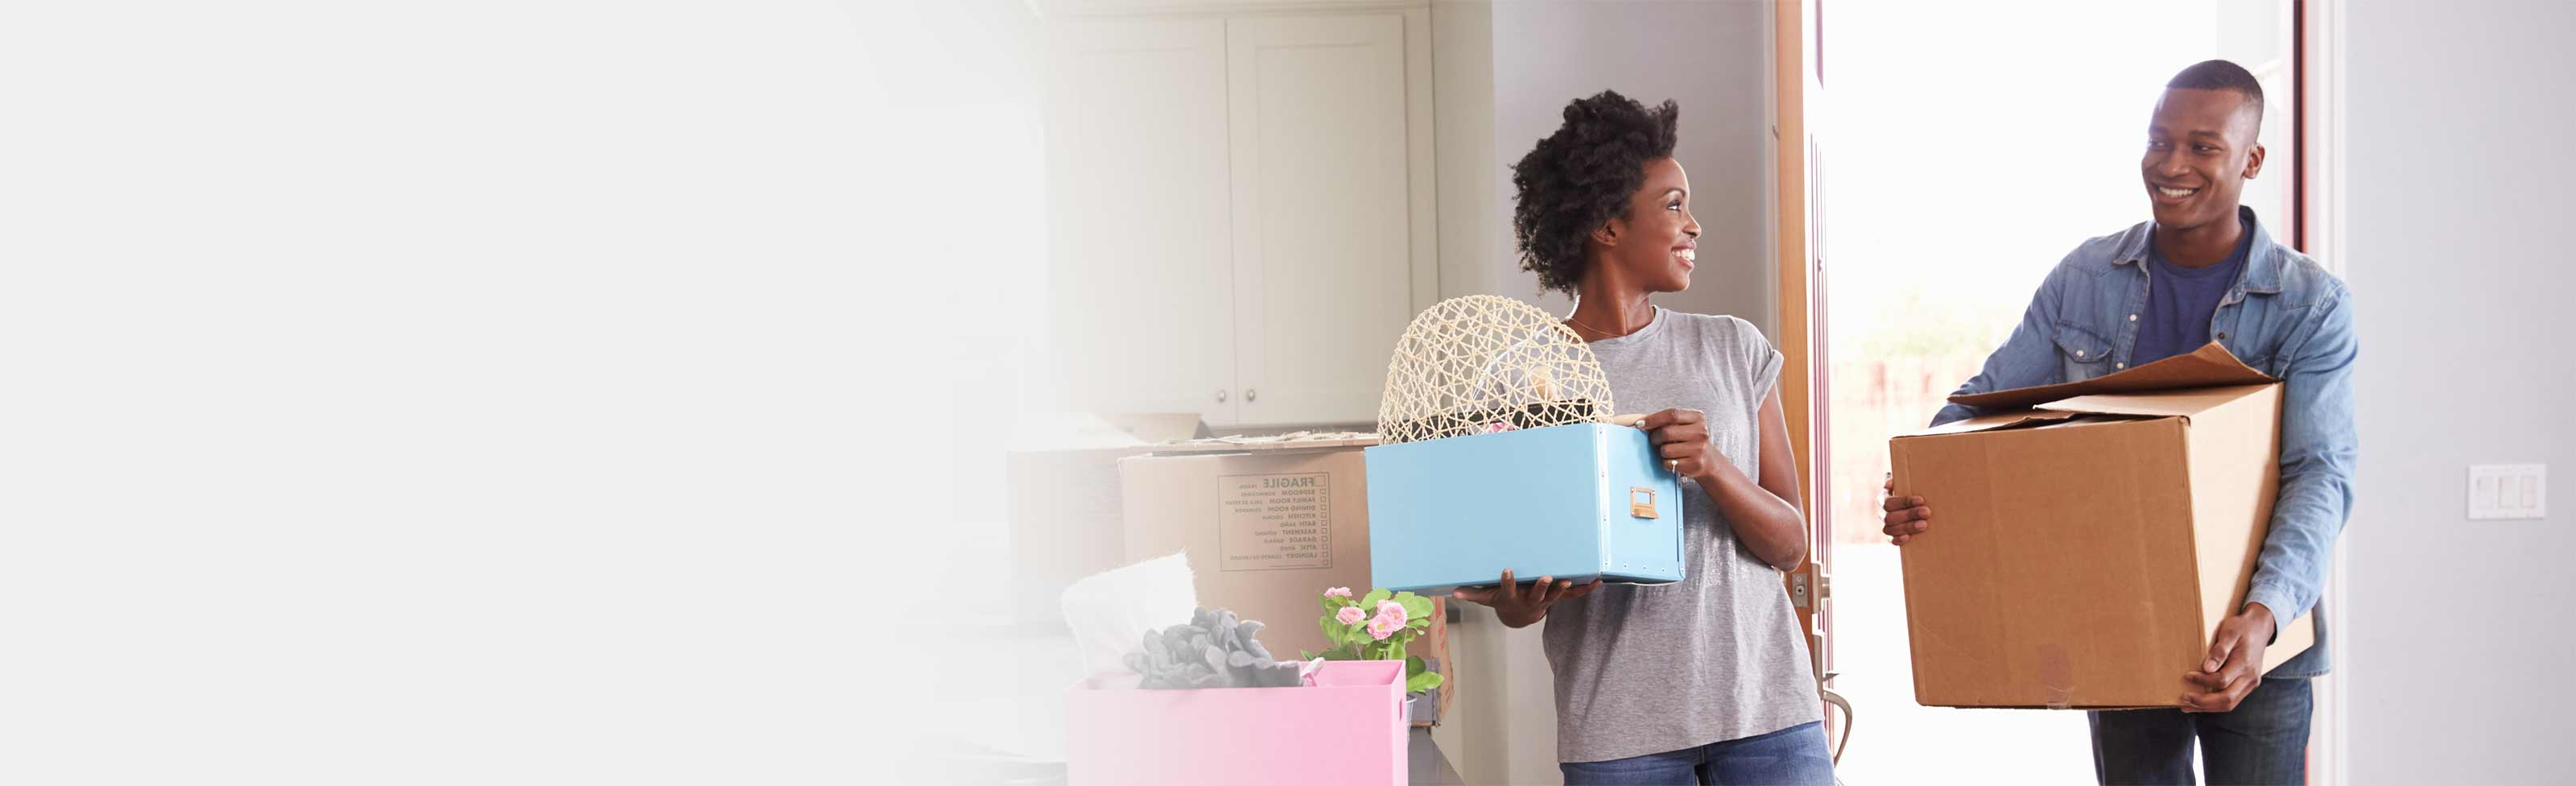 Young man and woman moving into home after using down payment assistance program.